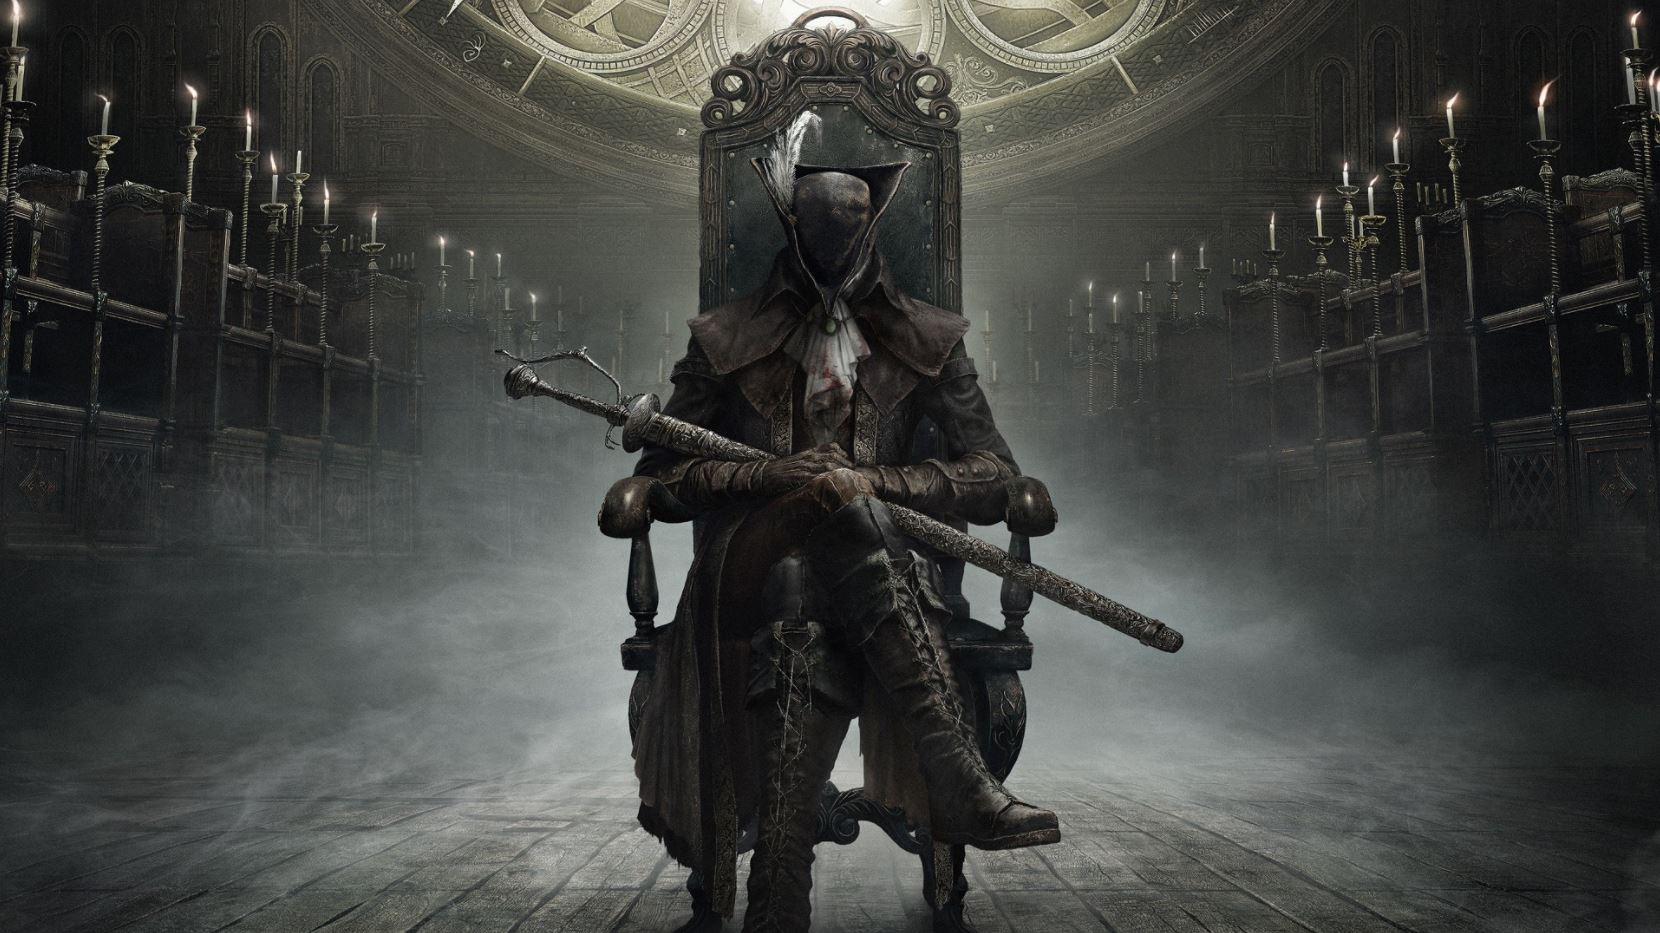 modder-lance-mcdonald-releases-his-bloodborne-60-fps-to-the-public-here-is-how-to-get-it